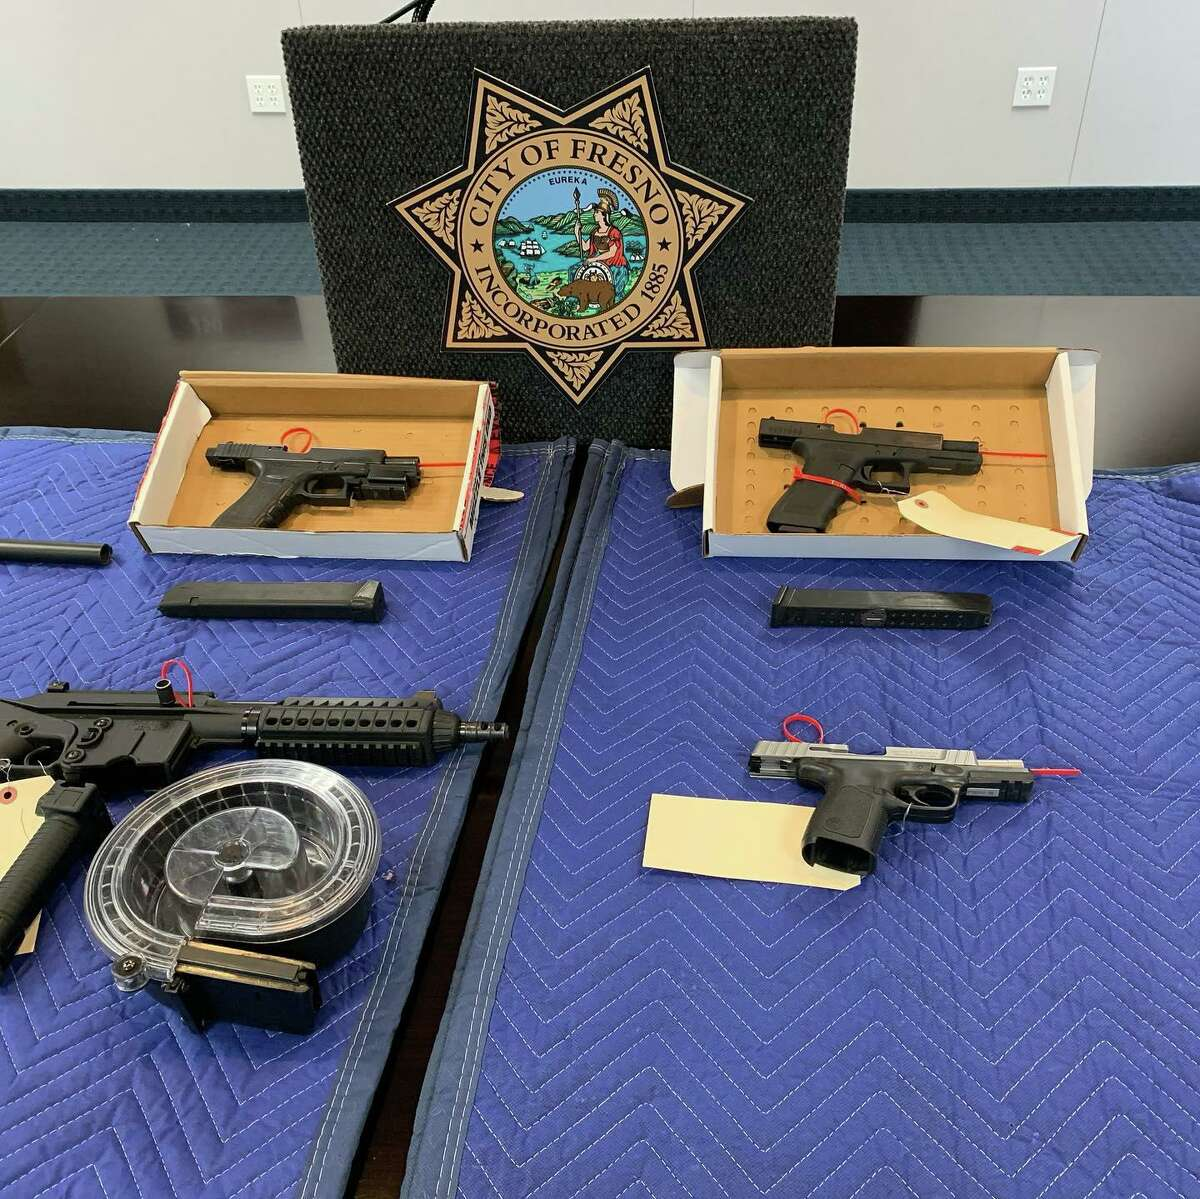 During a press conference on Dec. 31, 2019, the Fresno Police Department displayed a cache of rifles and handguns they had confiscated while six people in connection with a Nov. 17, 2019 mass shooting on the patio of a Fresno home which left four people dead and 10 more wounded as they watched a football game.